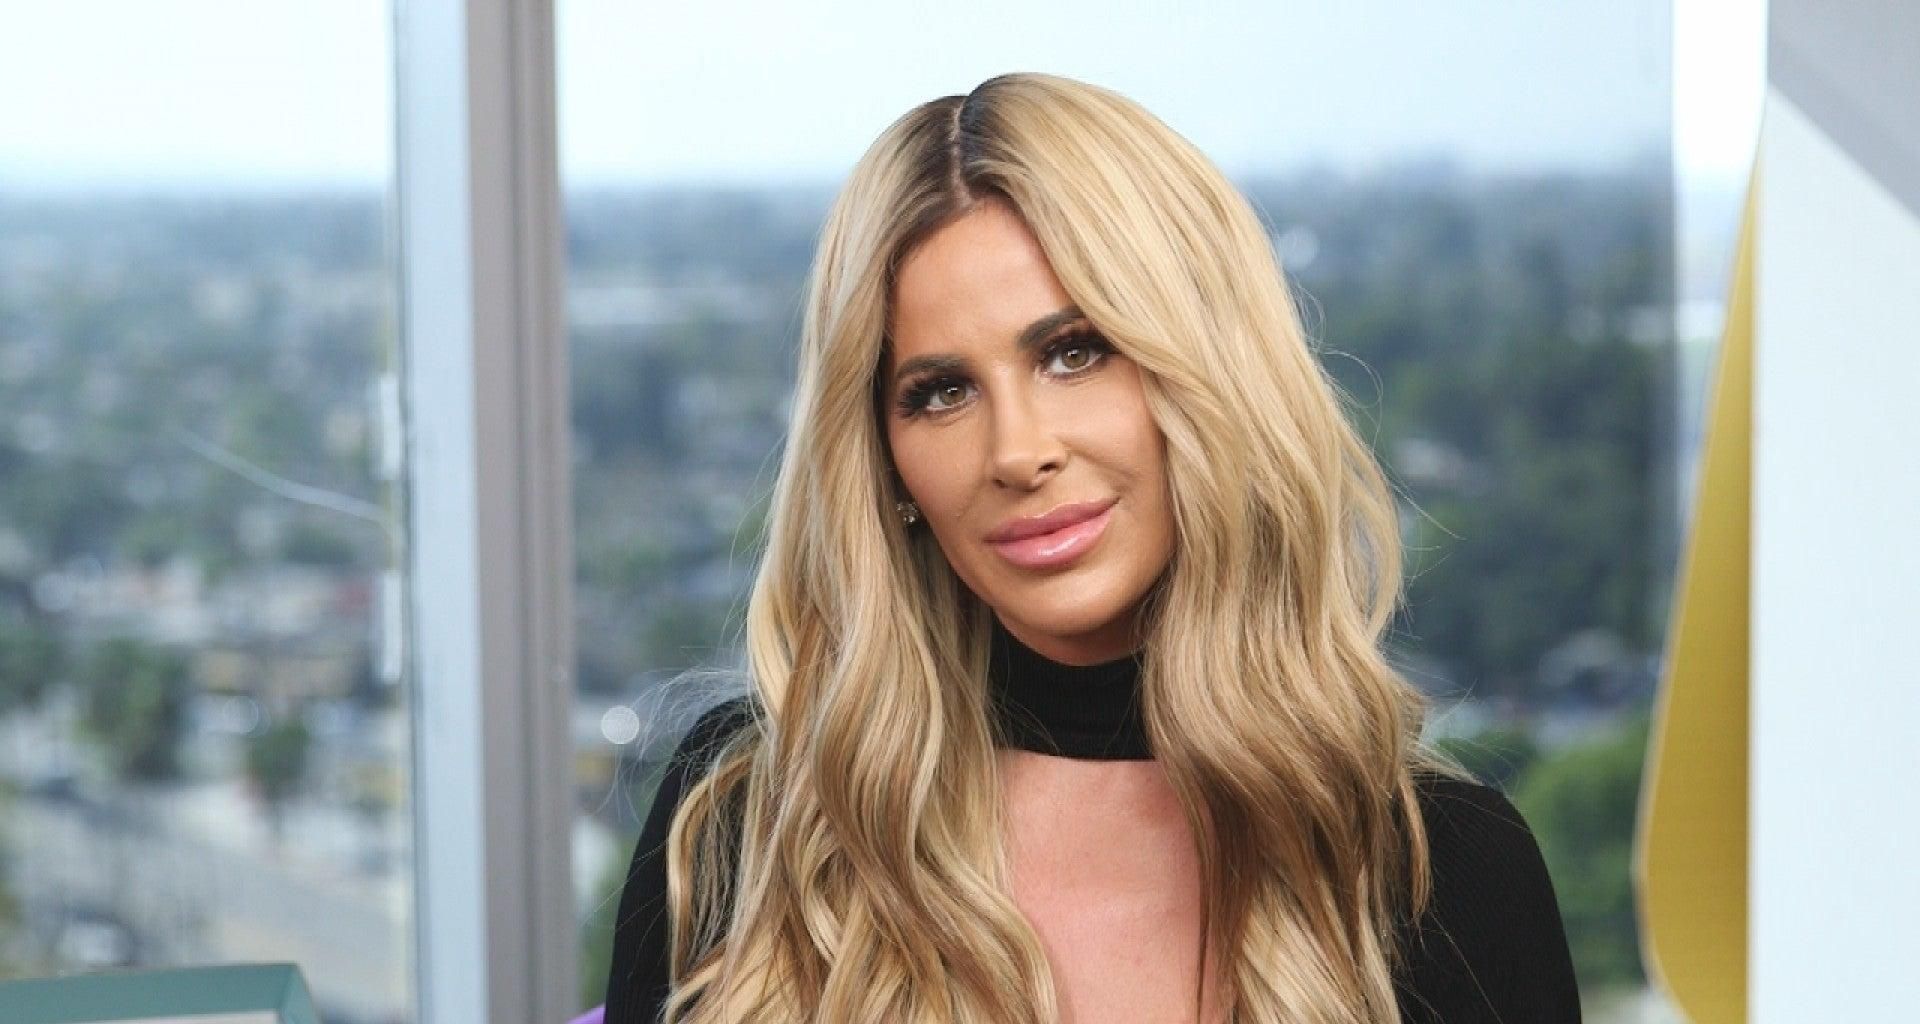 Kim Zolciak Opens Up About Possibly Returning To RHOA - Here's Her Conditions!